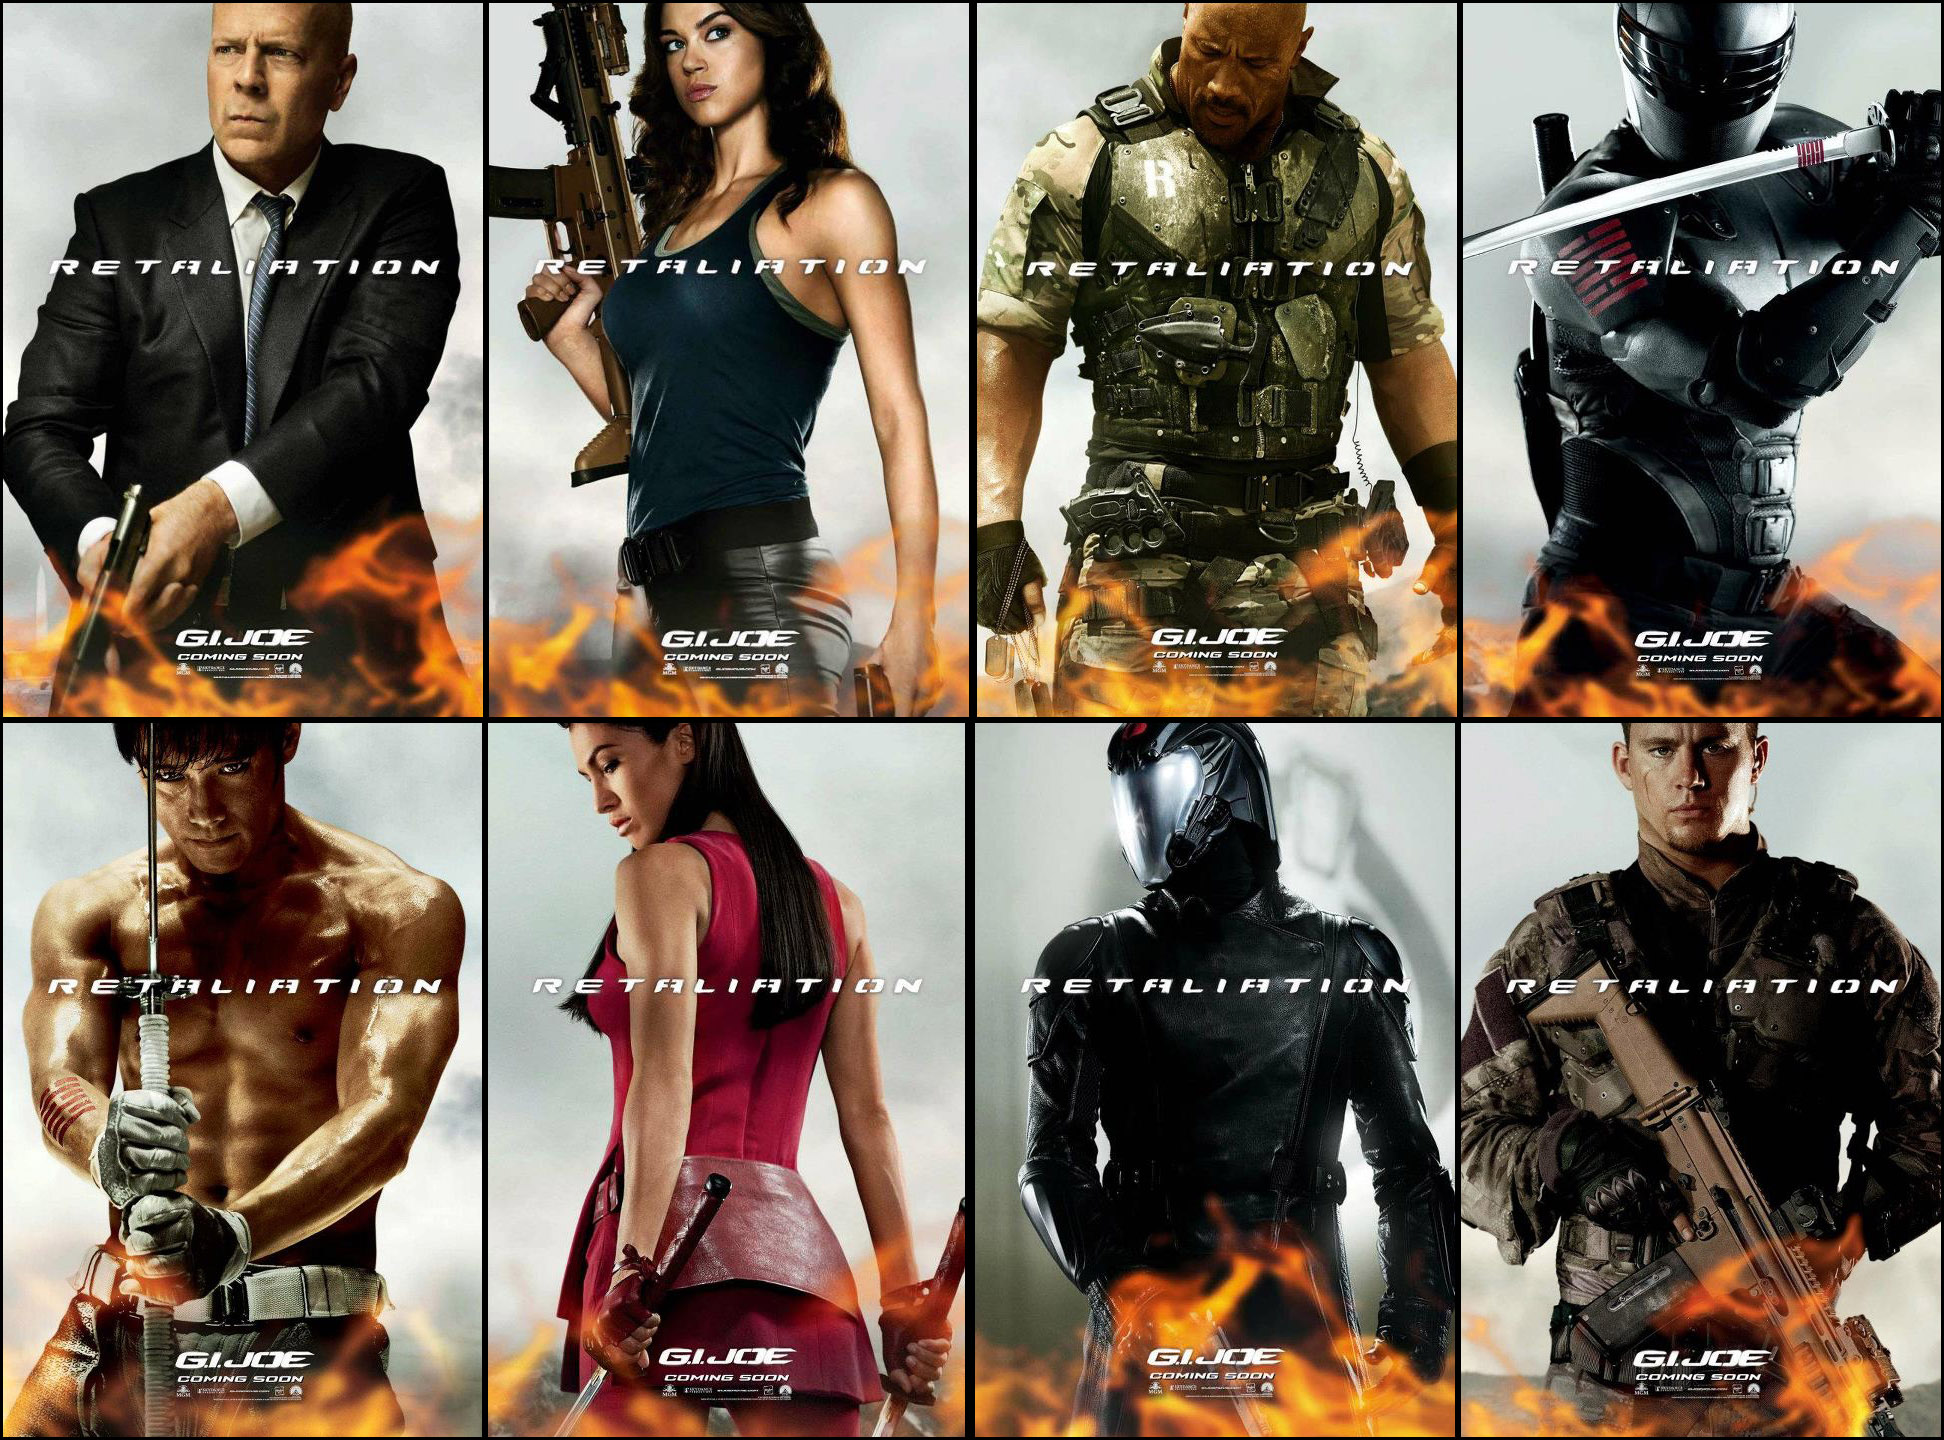 Paramount Releases 7 Character Banners Providing Evidence that G.I. Joe Retaliation will be One Bad Ass Movie.